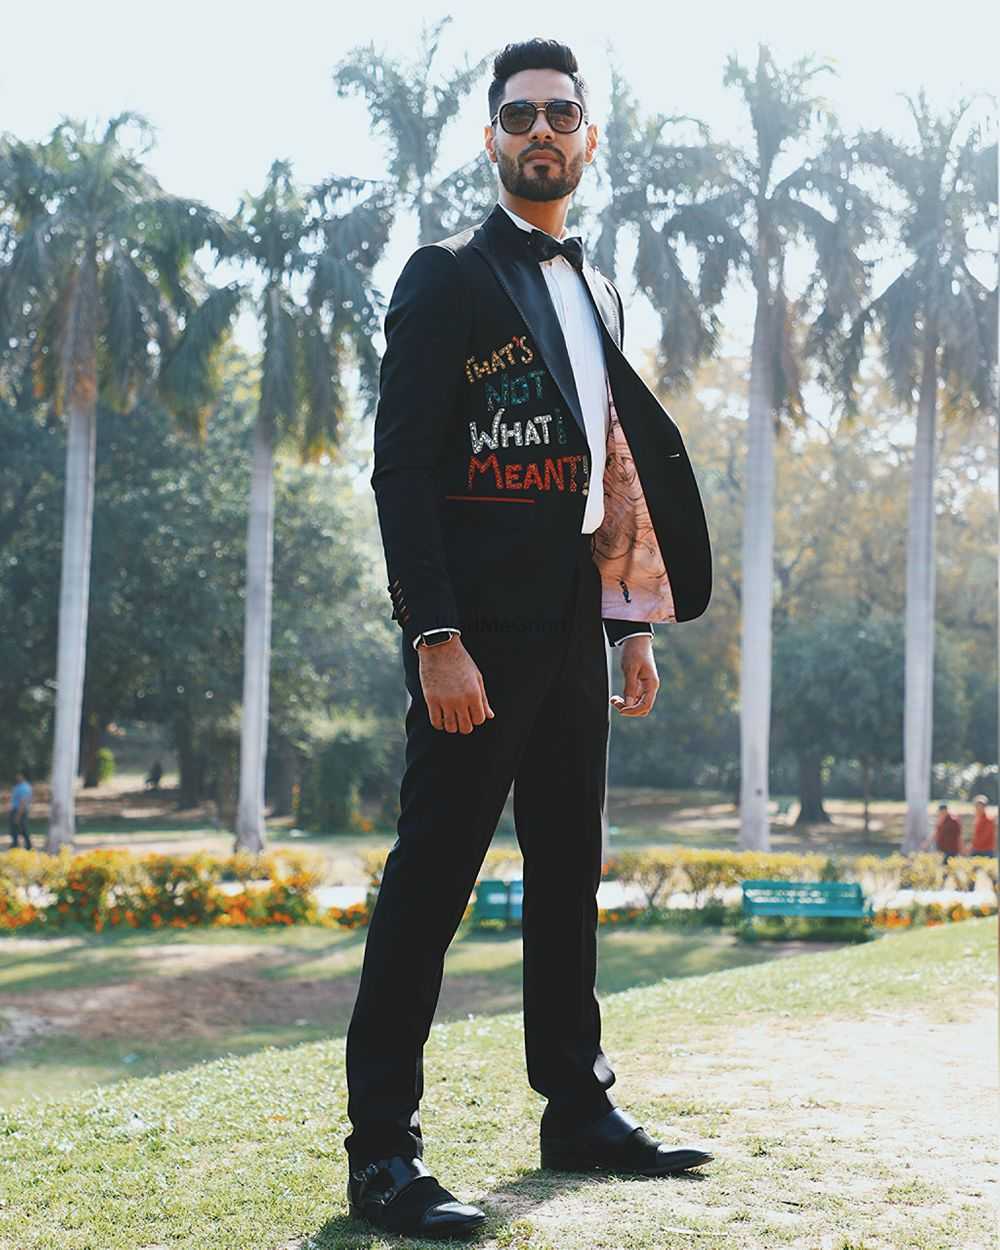 Photo of Unique personalised tuxedo jacket for quirky groom